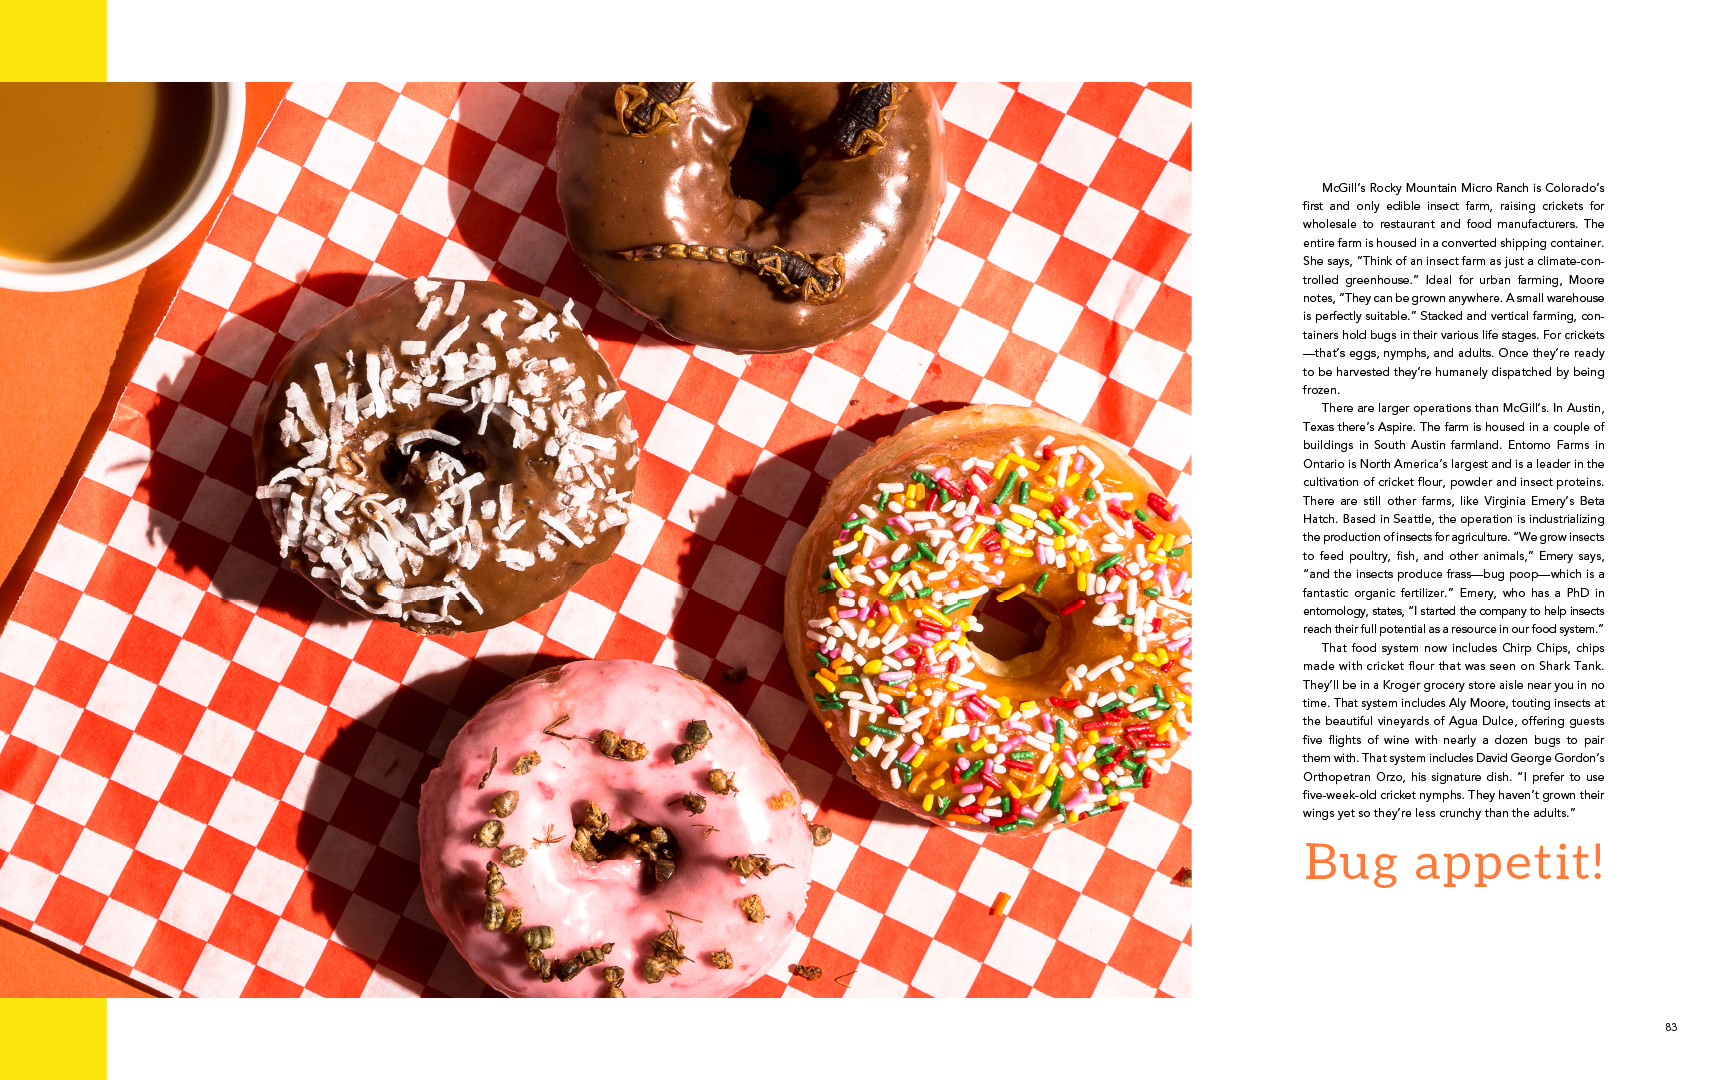 Bugs and Hand Modeling by Aly Moore, Food Styling by Ella Calderon, Words by Jonathan Shipley,